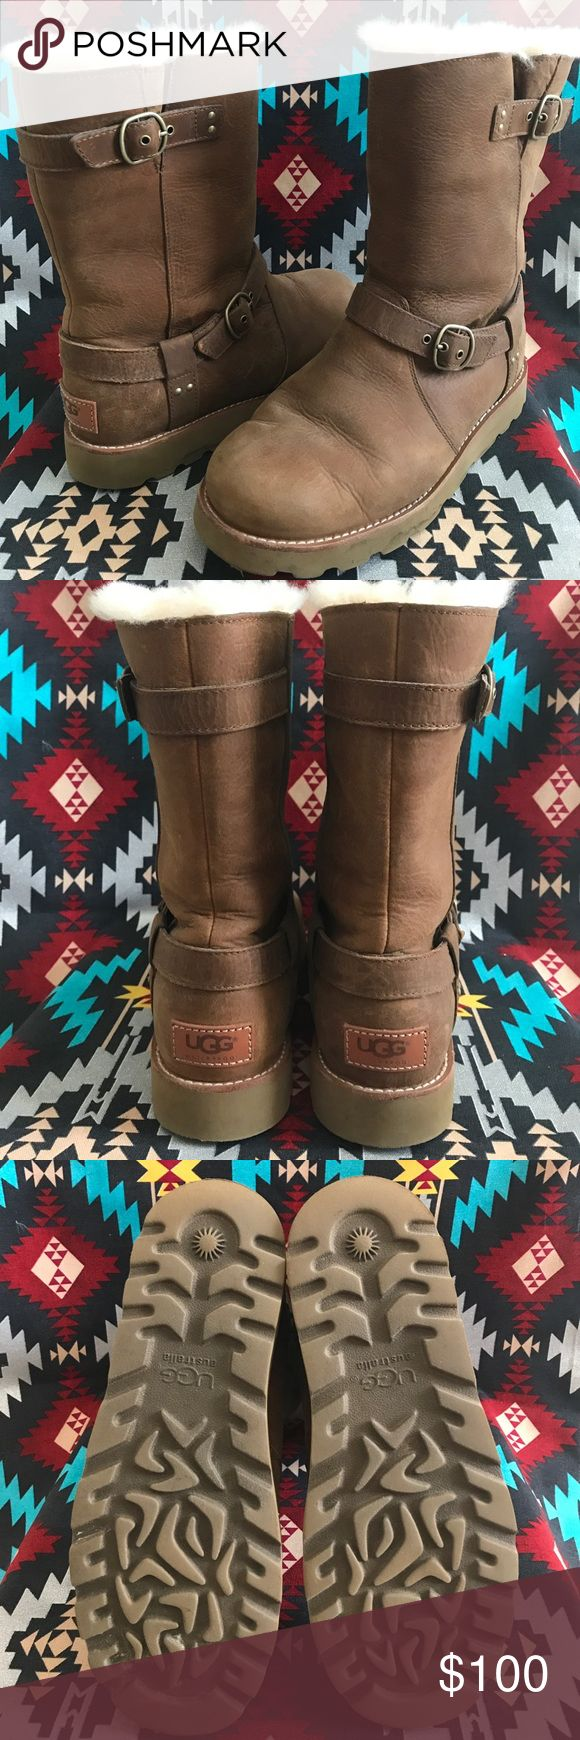 UGG Noira boots Just in time for Fall/Winter! These brown UGG sheepskin boots are waterproof, wool lined, buckles/metal hardware. Worn just a handful of times. There are a few marks (as seen in pics), but overall in great condition. UGG Shoes Winter & Rain Boots